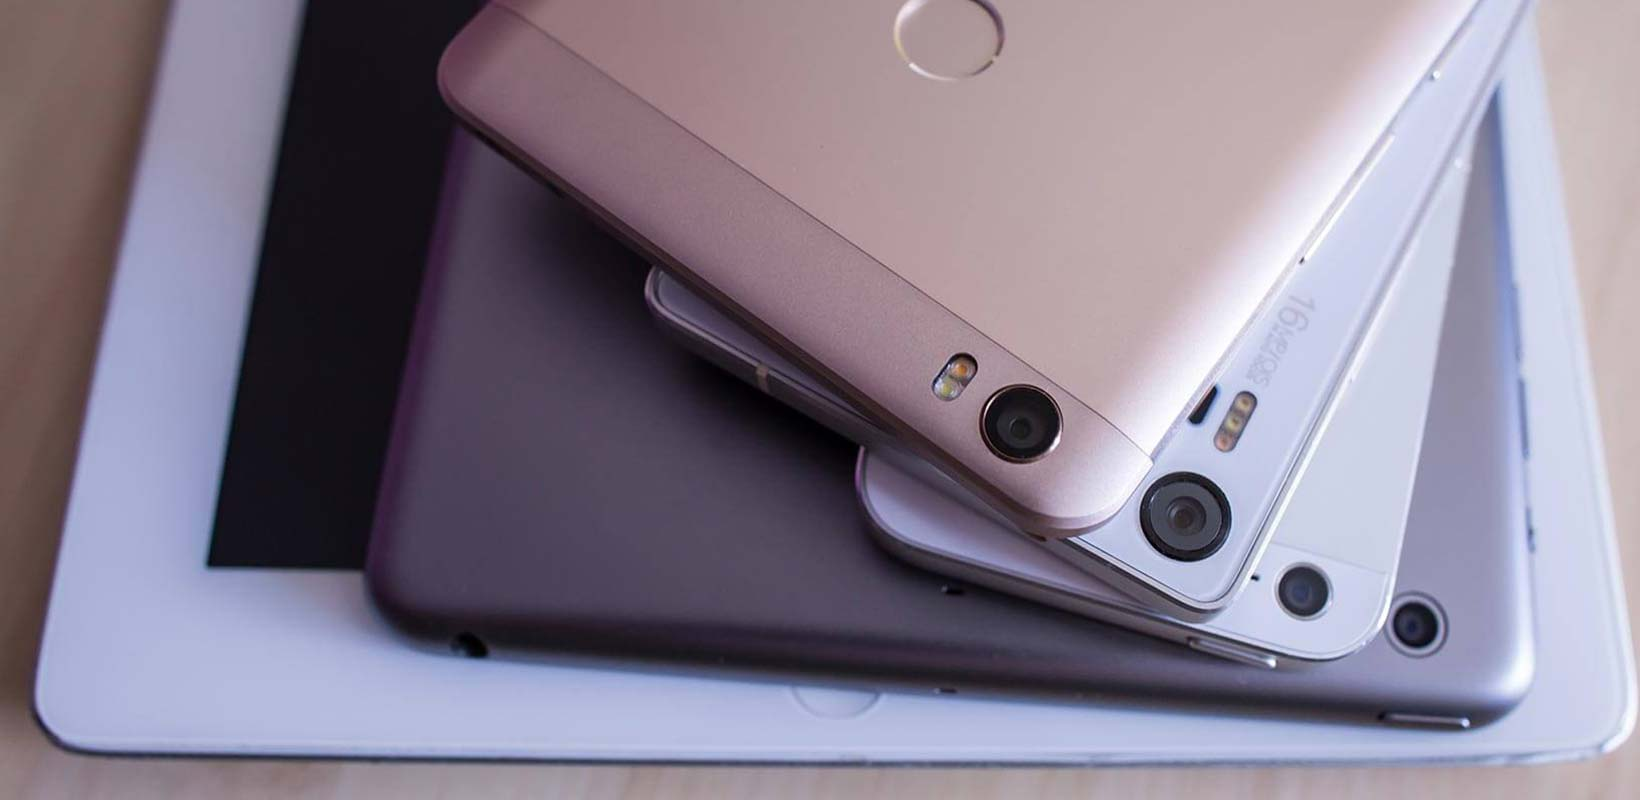 The Top Affordable Smartphones